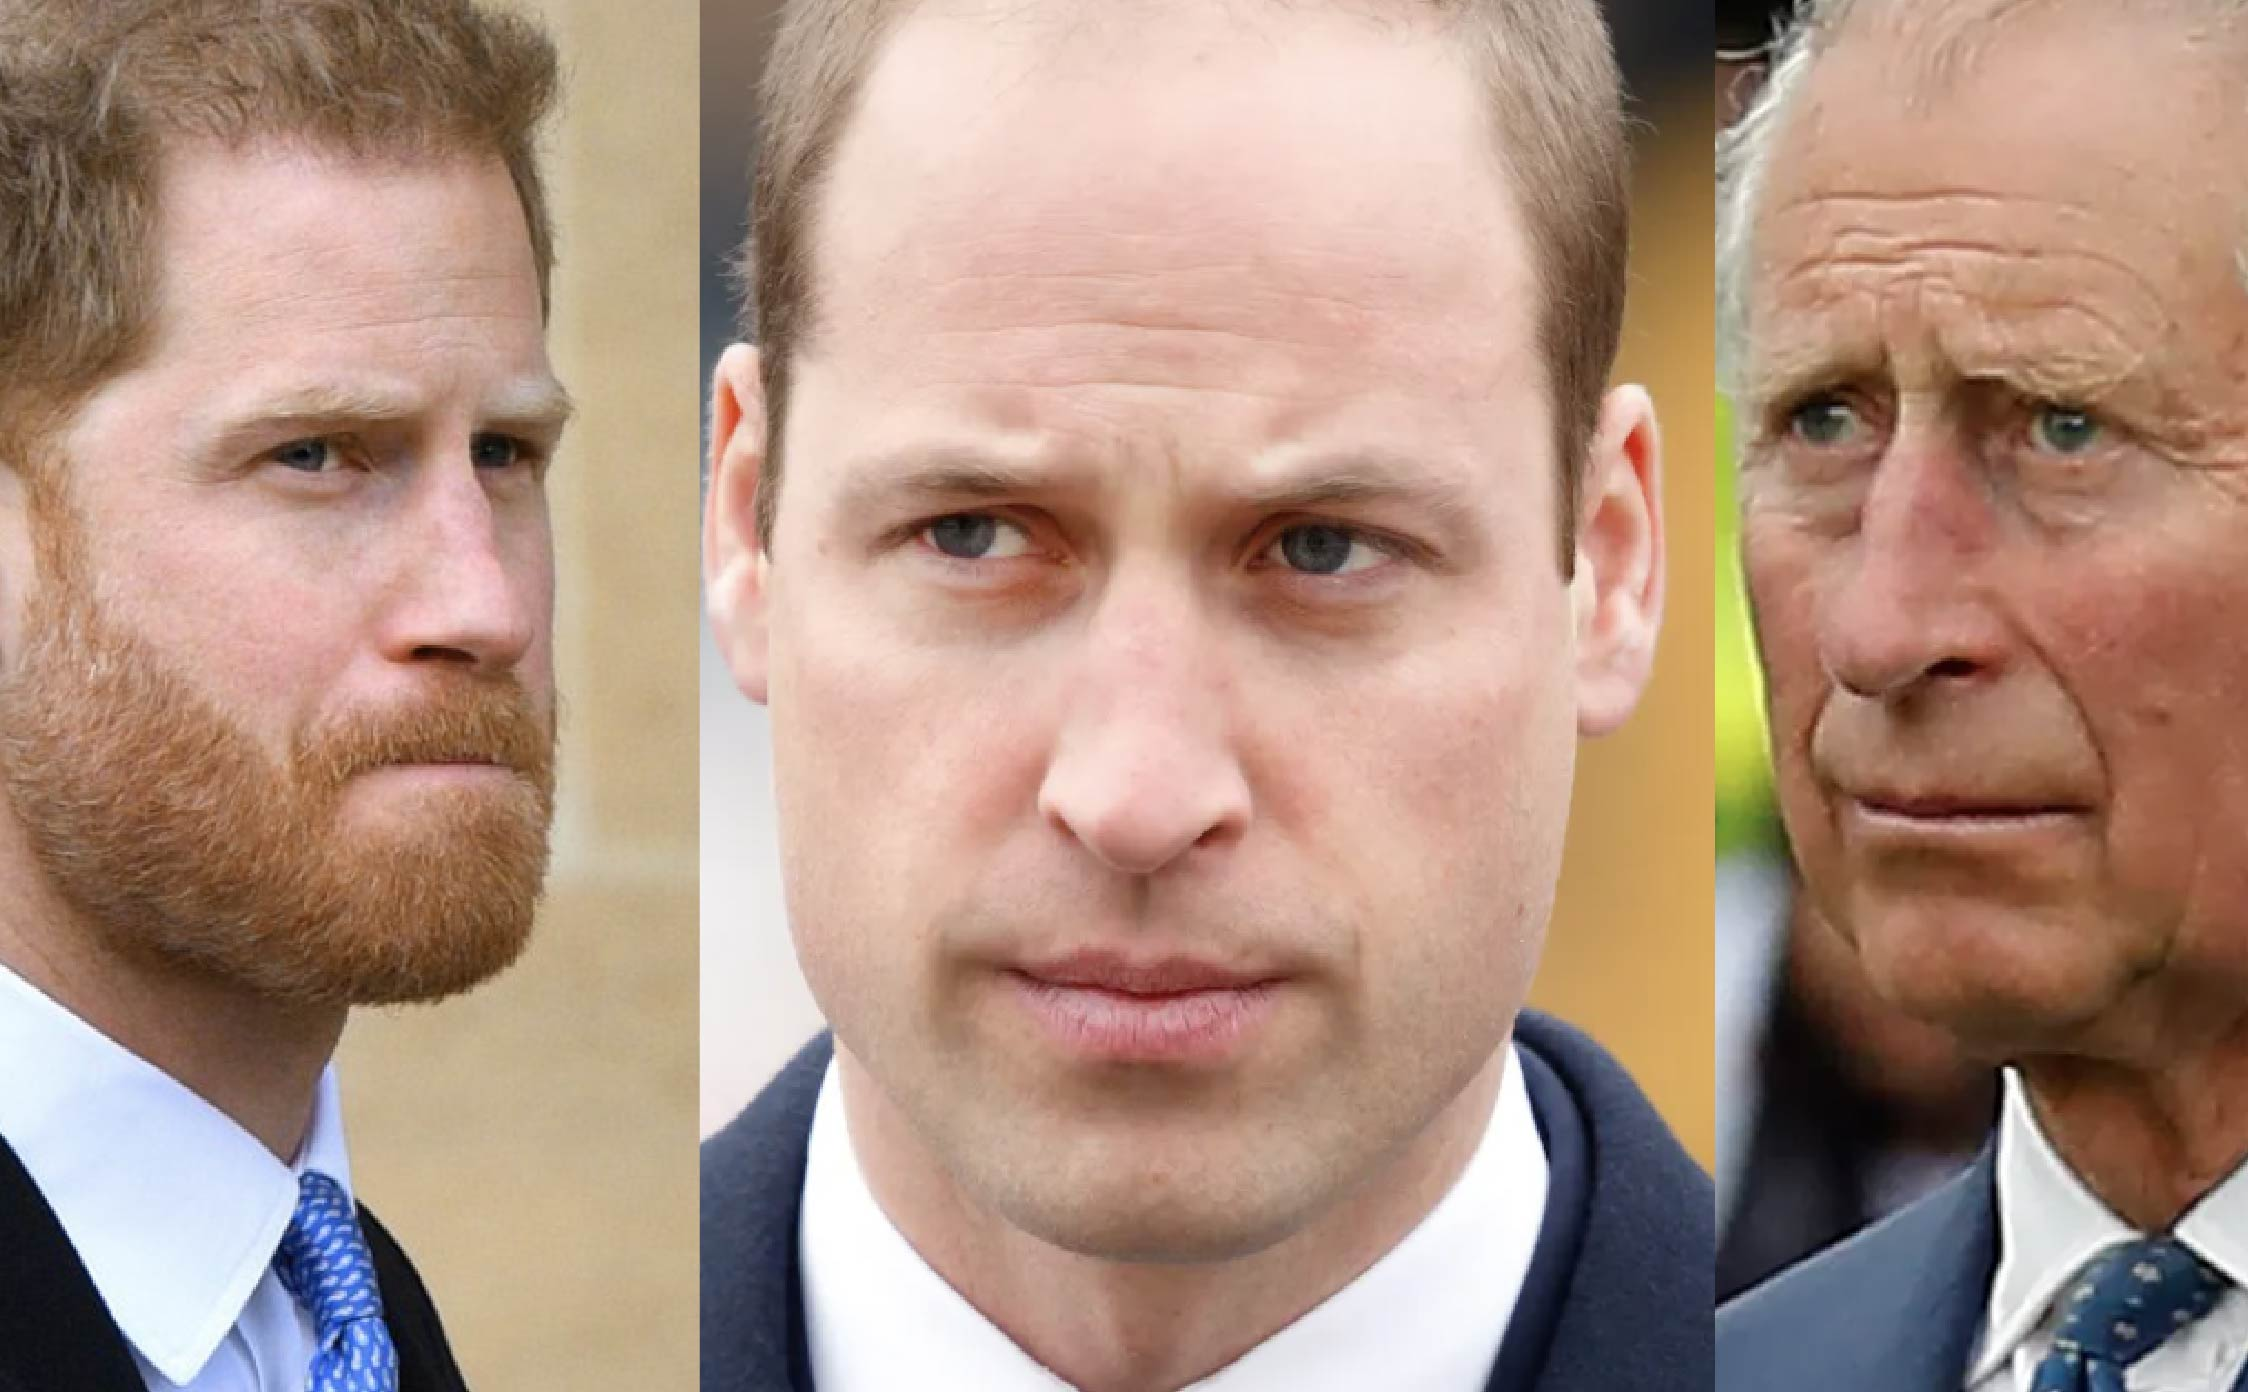 William and Charles Refused to Meet With Harry Privately - Now He's Packing Up and Going Home